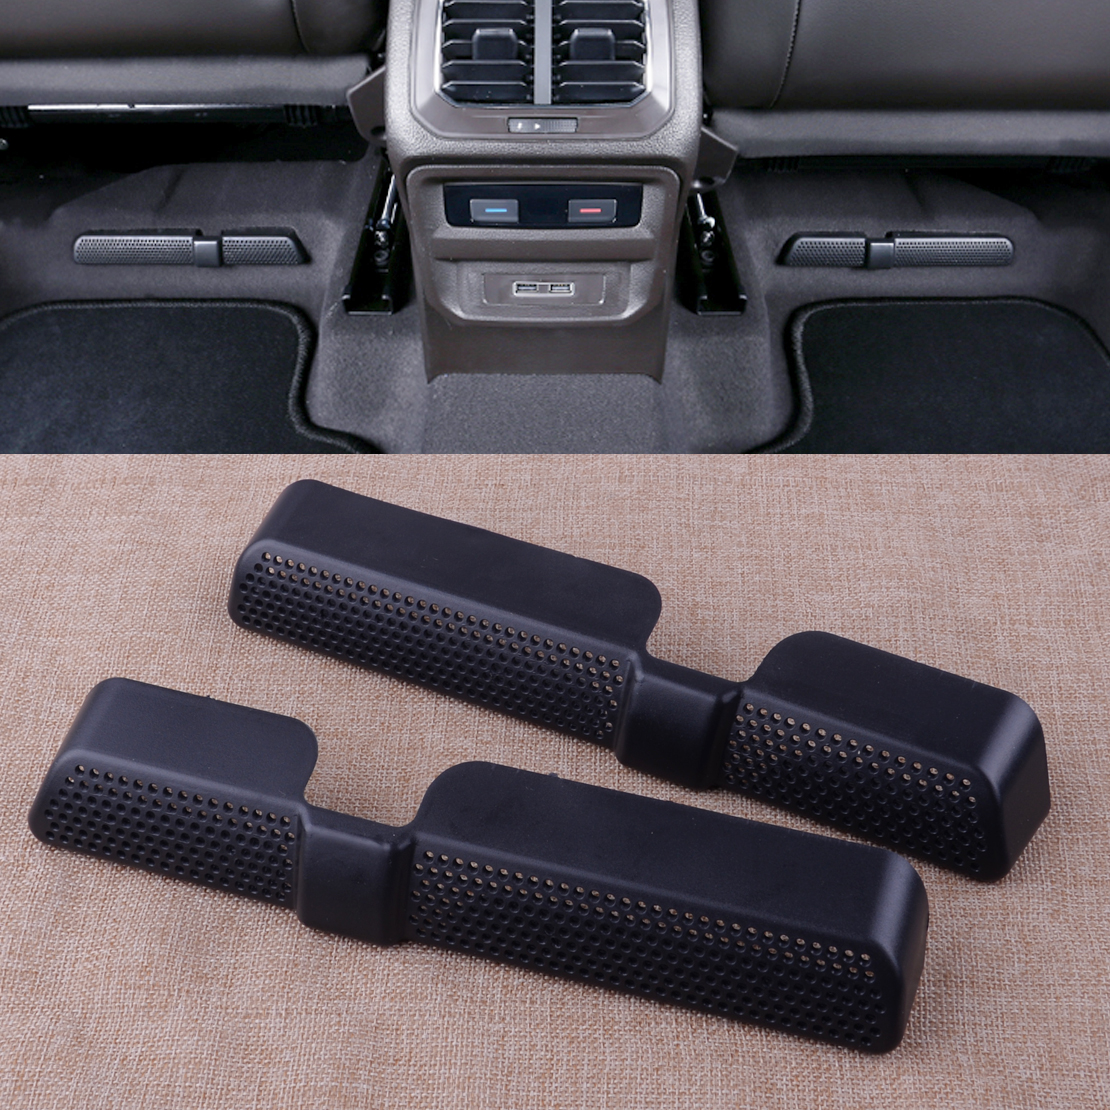 CITALL 2pcs Black Rear Seat Air Condition Vent Outlet Dust Cover Trim Protector Fit For VW Tiguan 2017 2018 2019